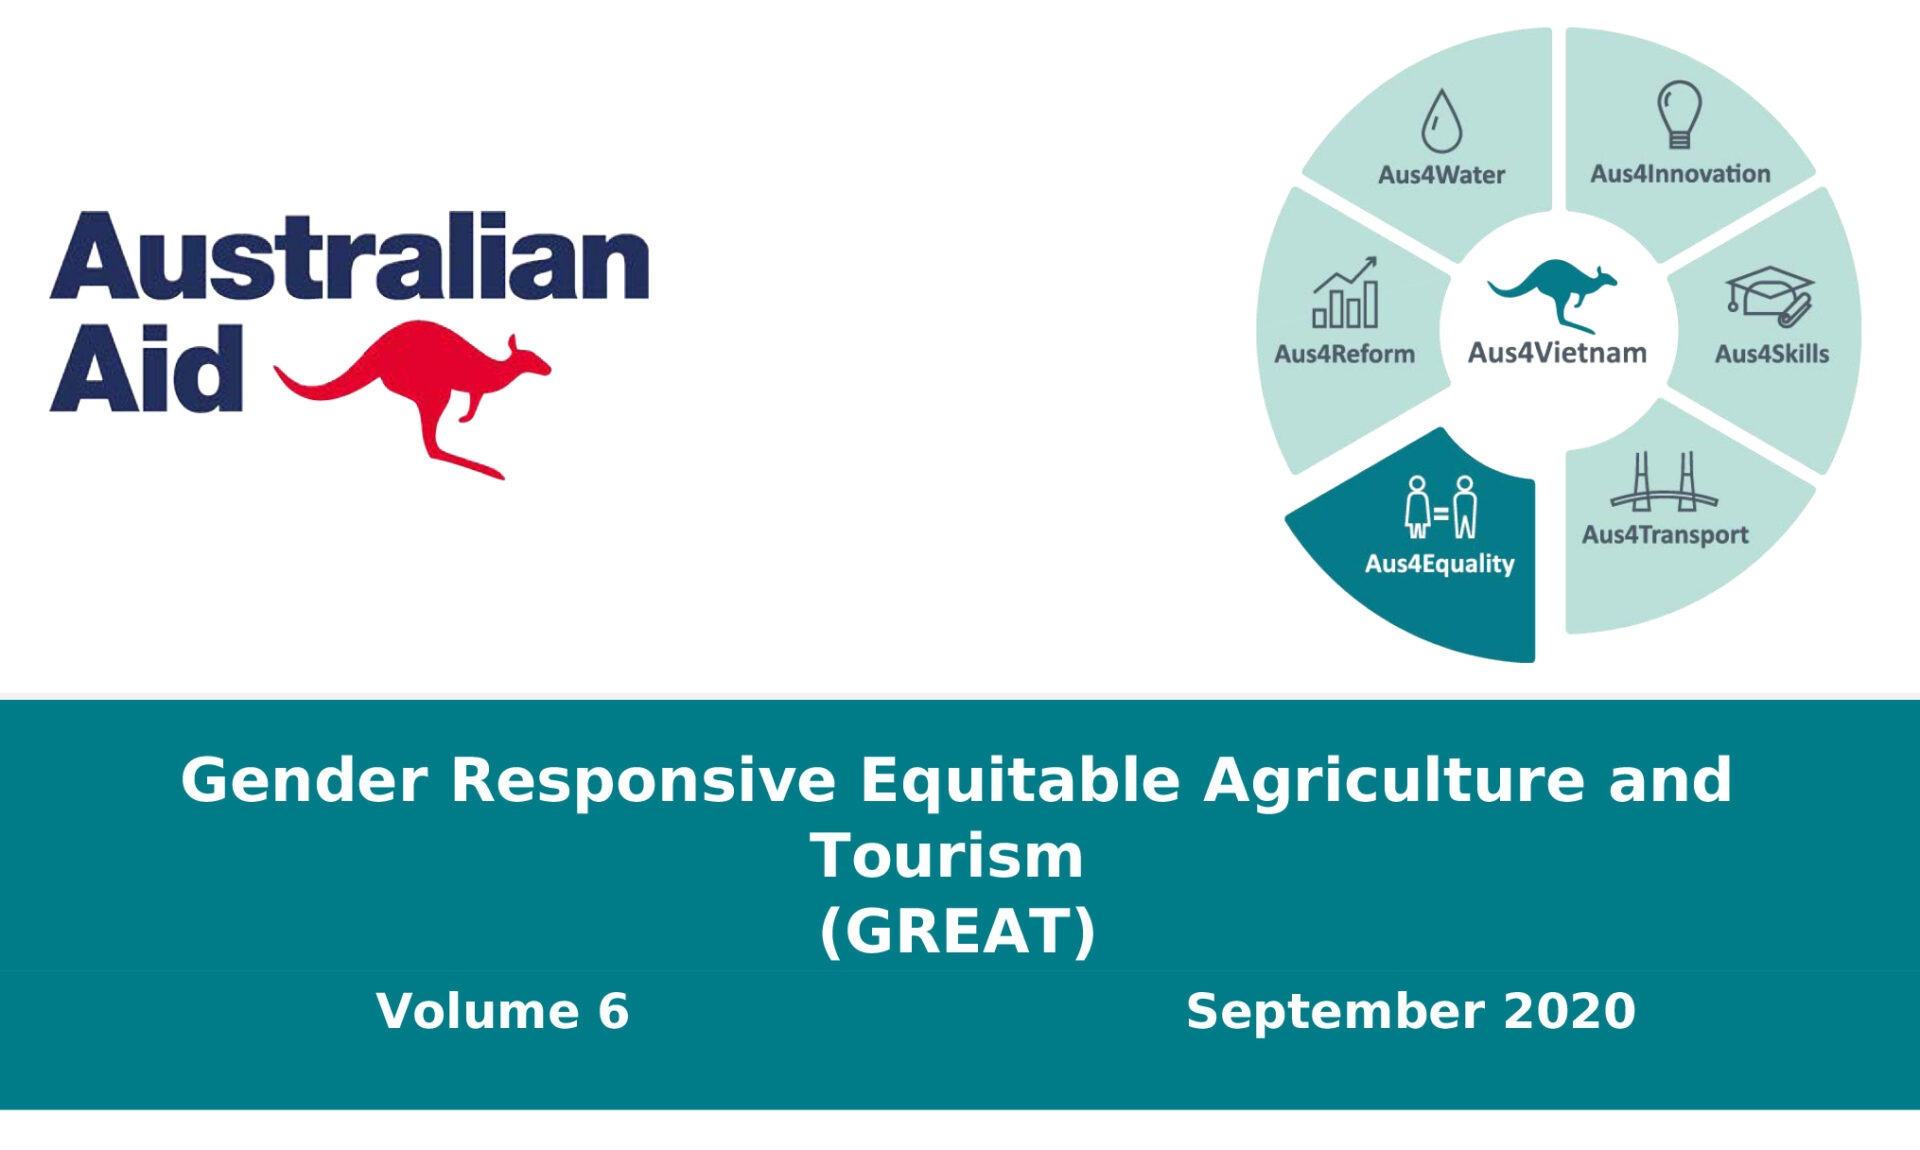 Gender Responsive Equitable Agriculture and Tourism (GREAT): Quarterly Newsletter